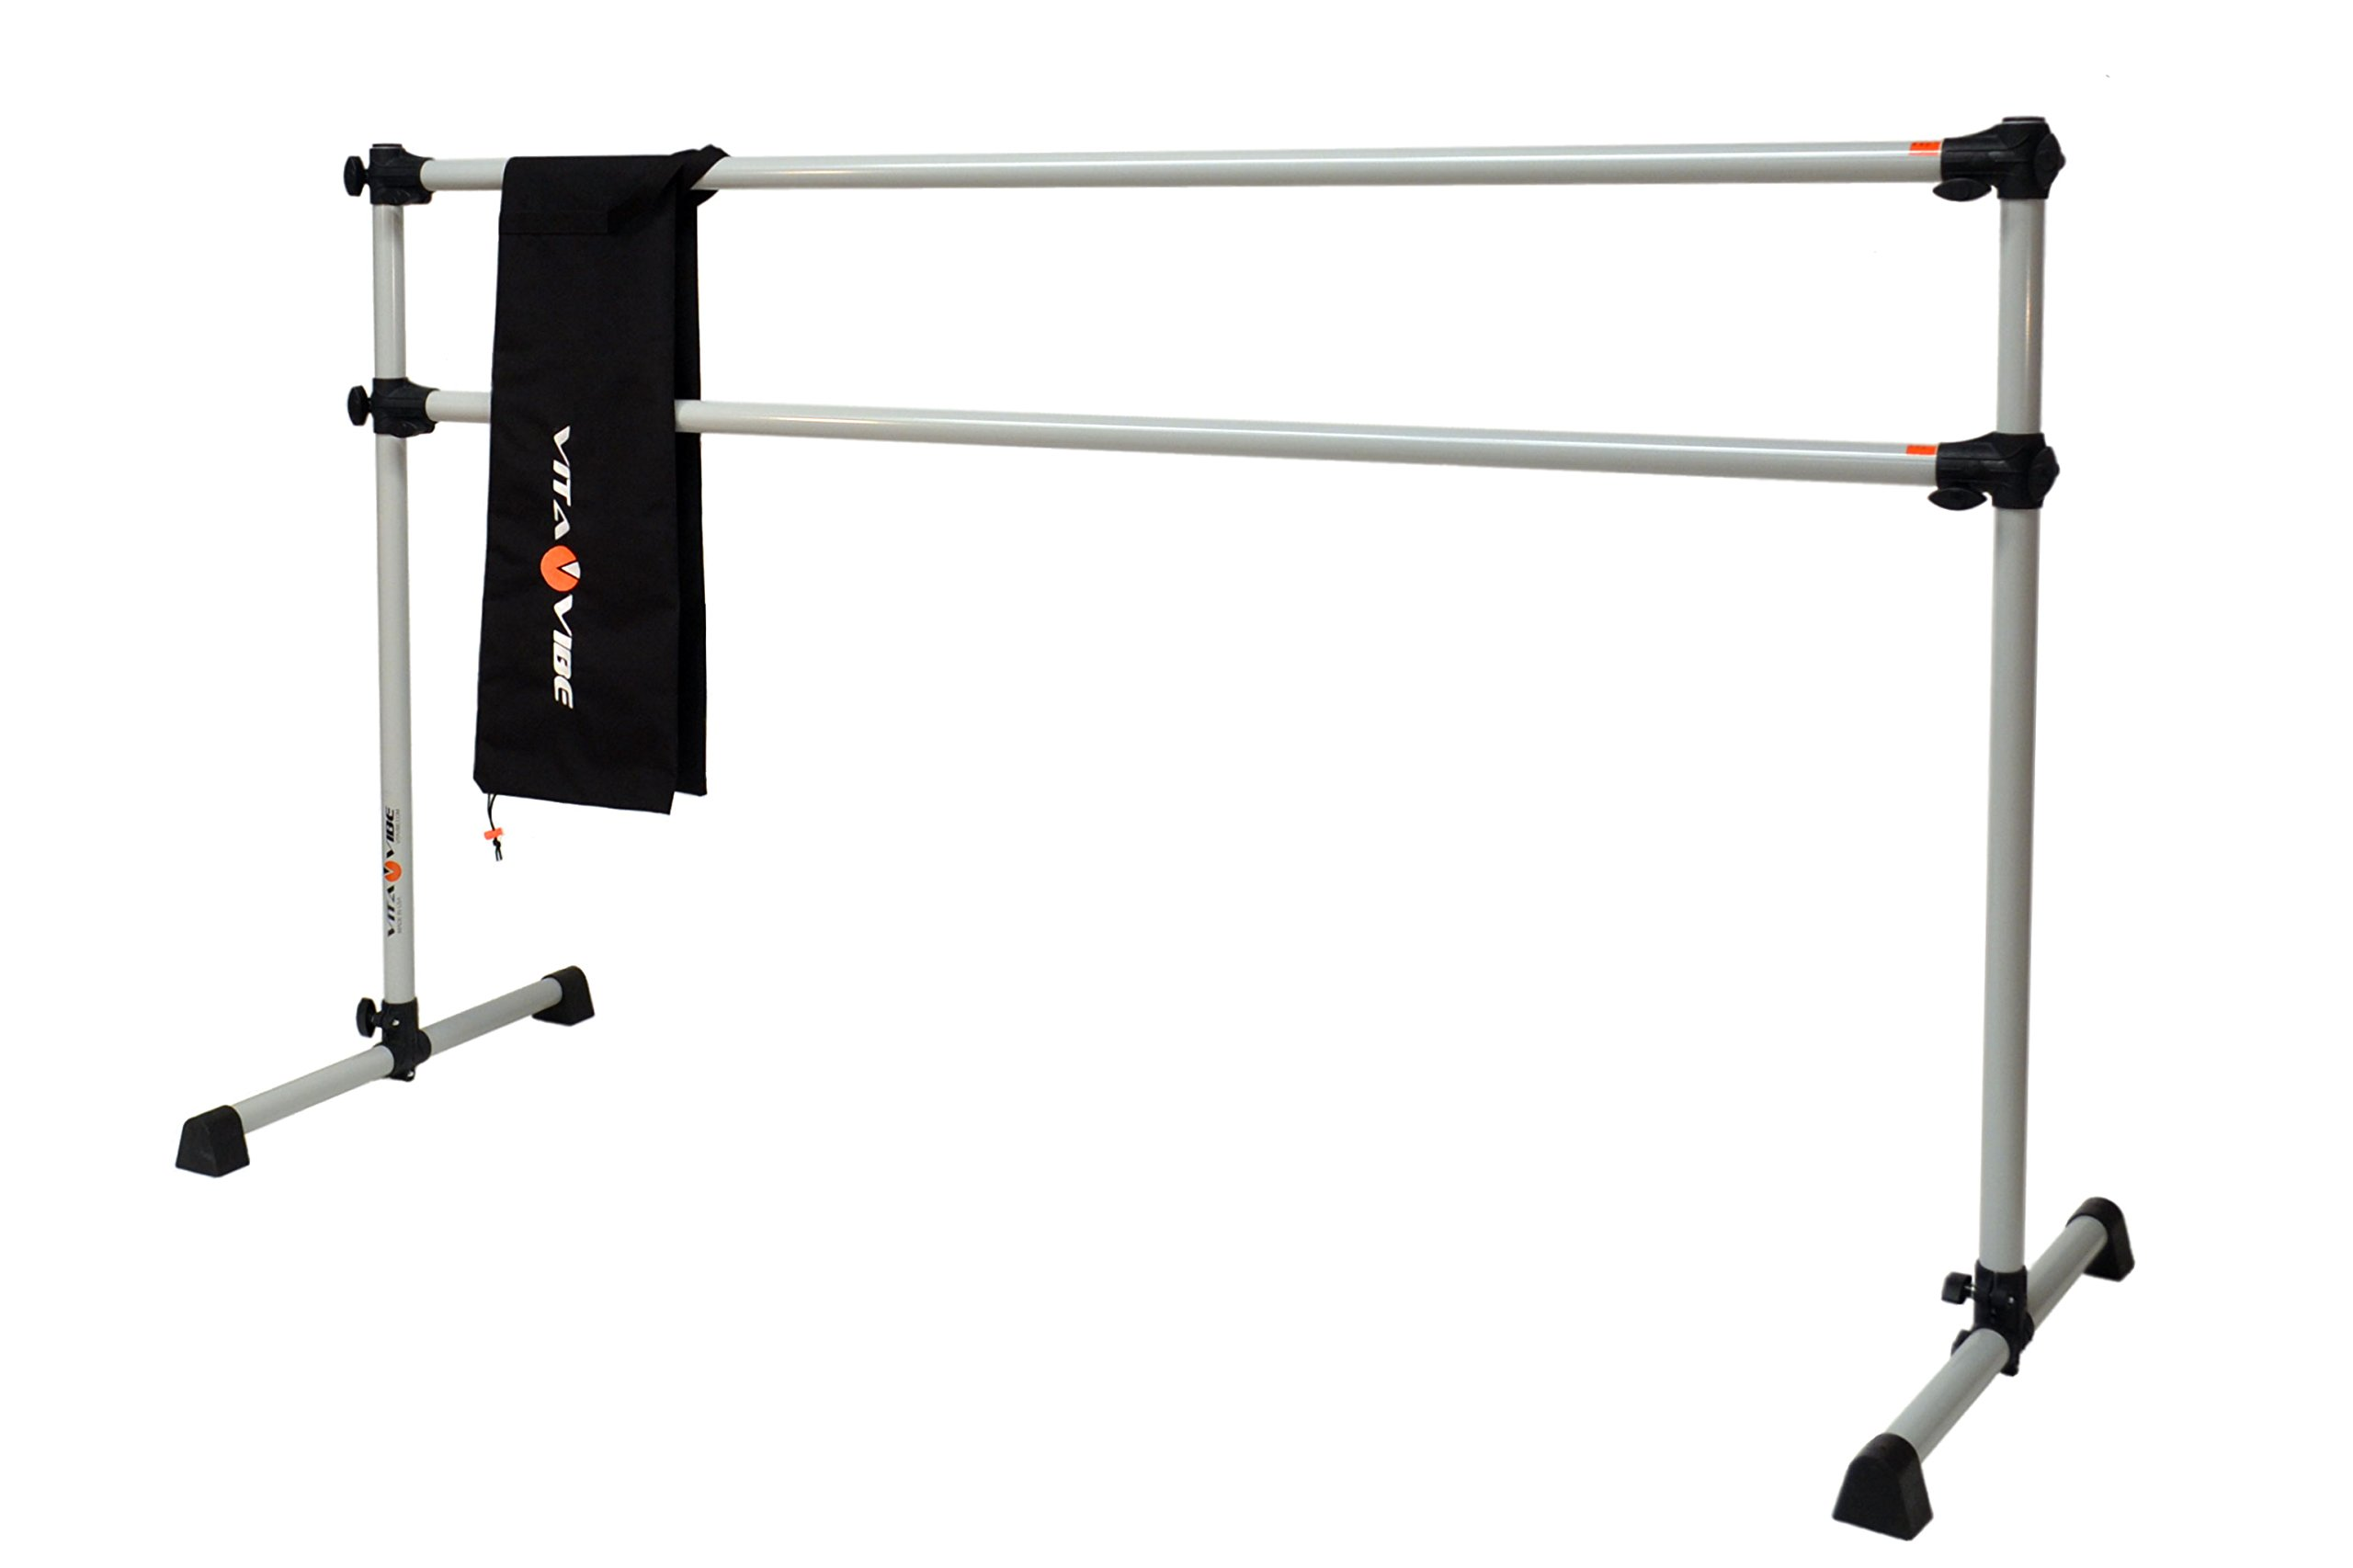 Vita Vibe Ballet Barre - DBNB4 4ft Portable Double Bar w/Bag - Freestanding Stretch/Dance Bar - Vita Vibe - USA Made